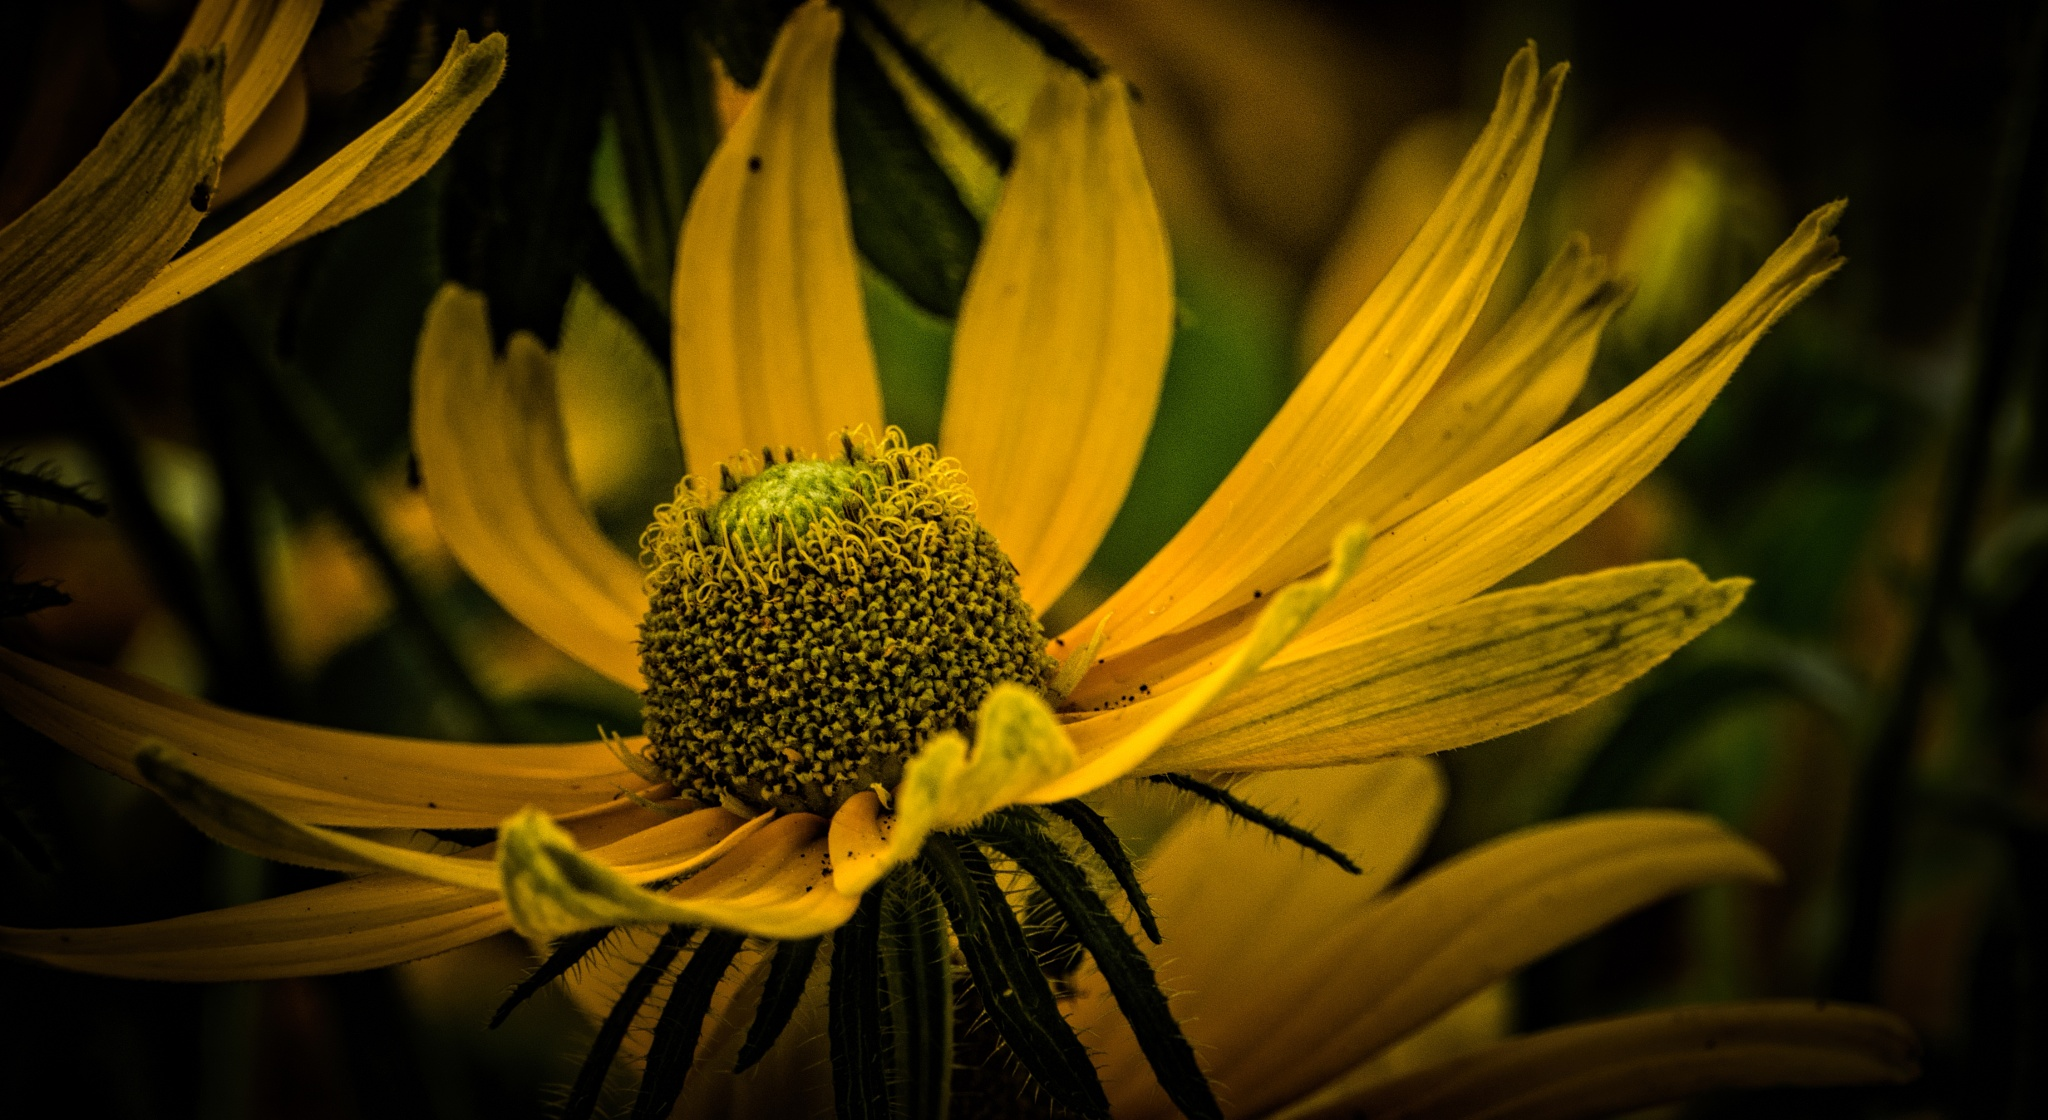 Coneflower Takes Flight by JohnEllingson